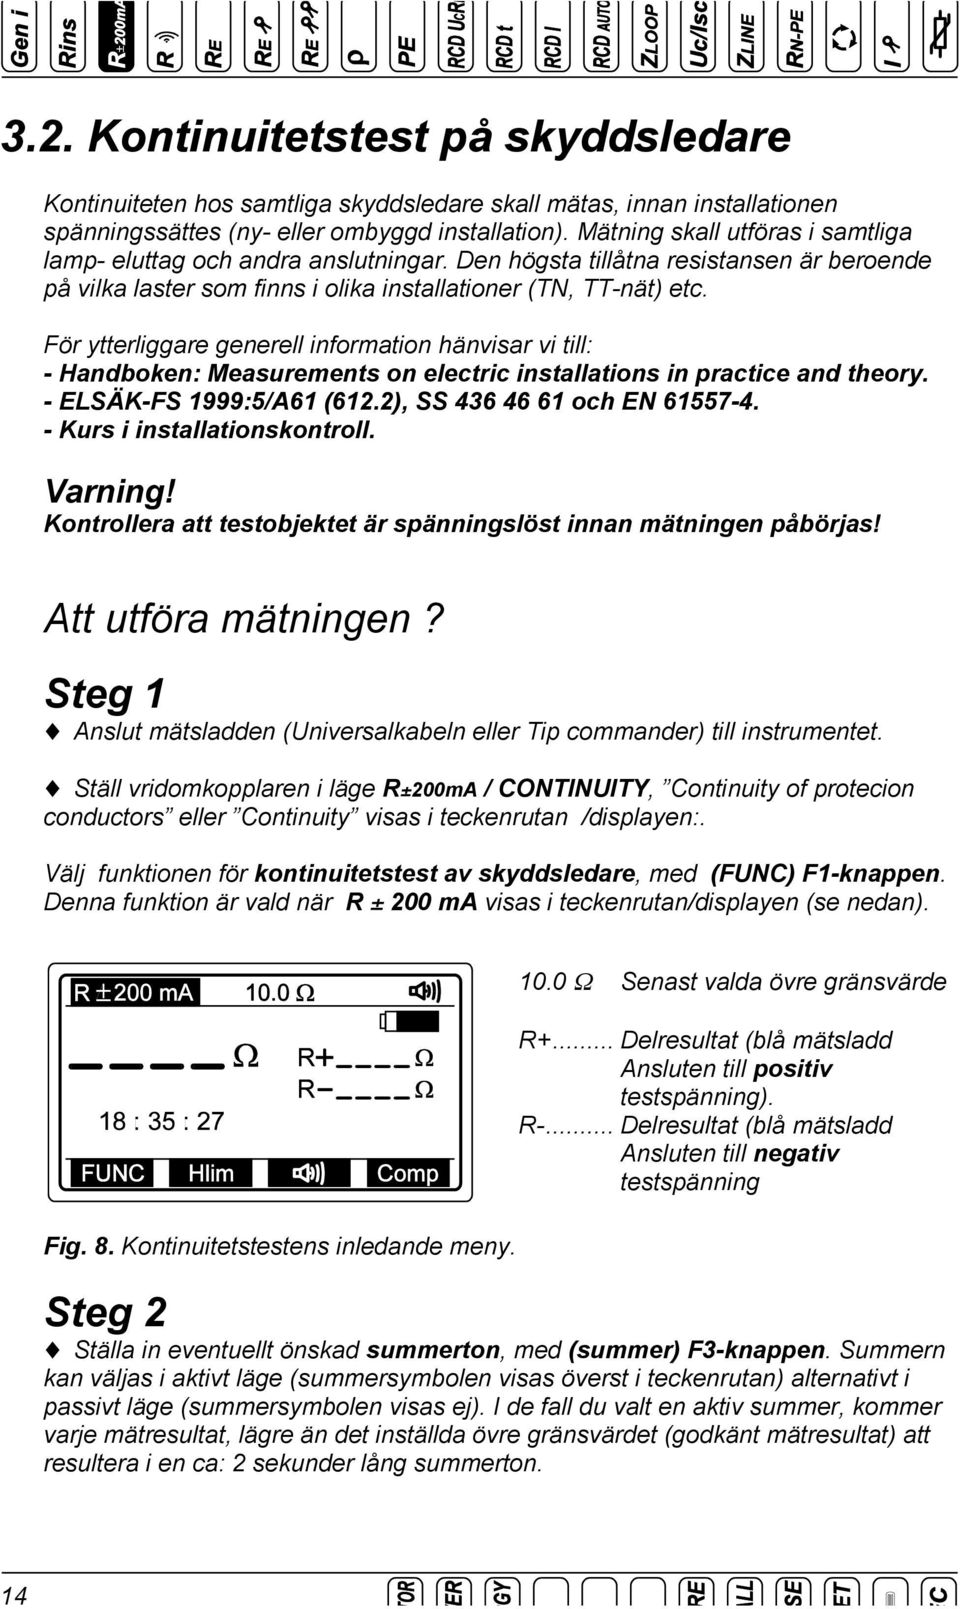 För ytterliggare generell information hänvisar vi till: - Handboken: Measurements on electric installations in practice and theory. - ELSÄK-FS 1999:5/A61 (612.2), SS 436 46 61 och EN 61557-4.